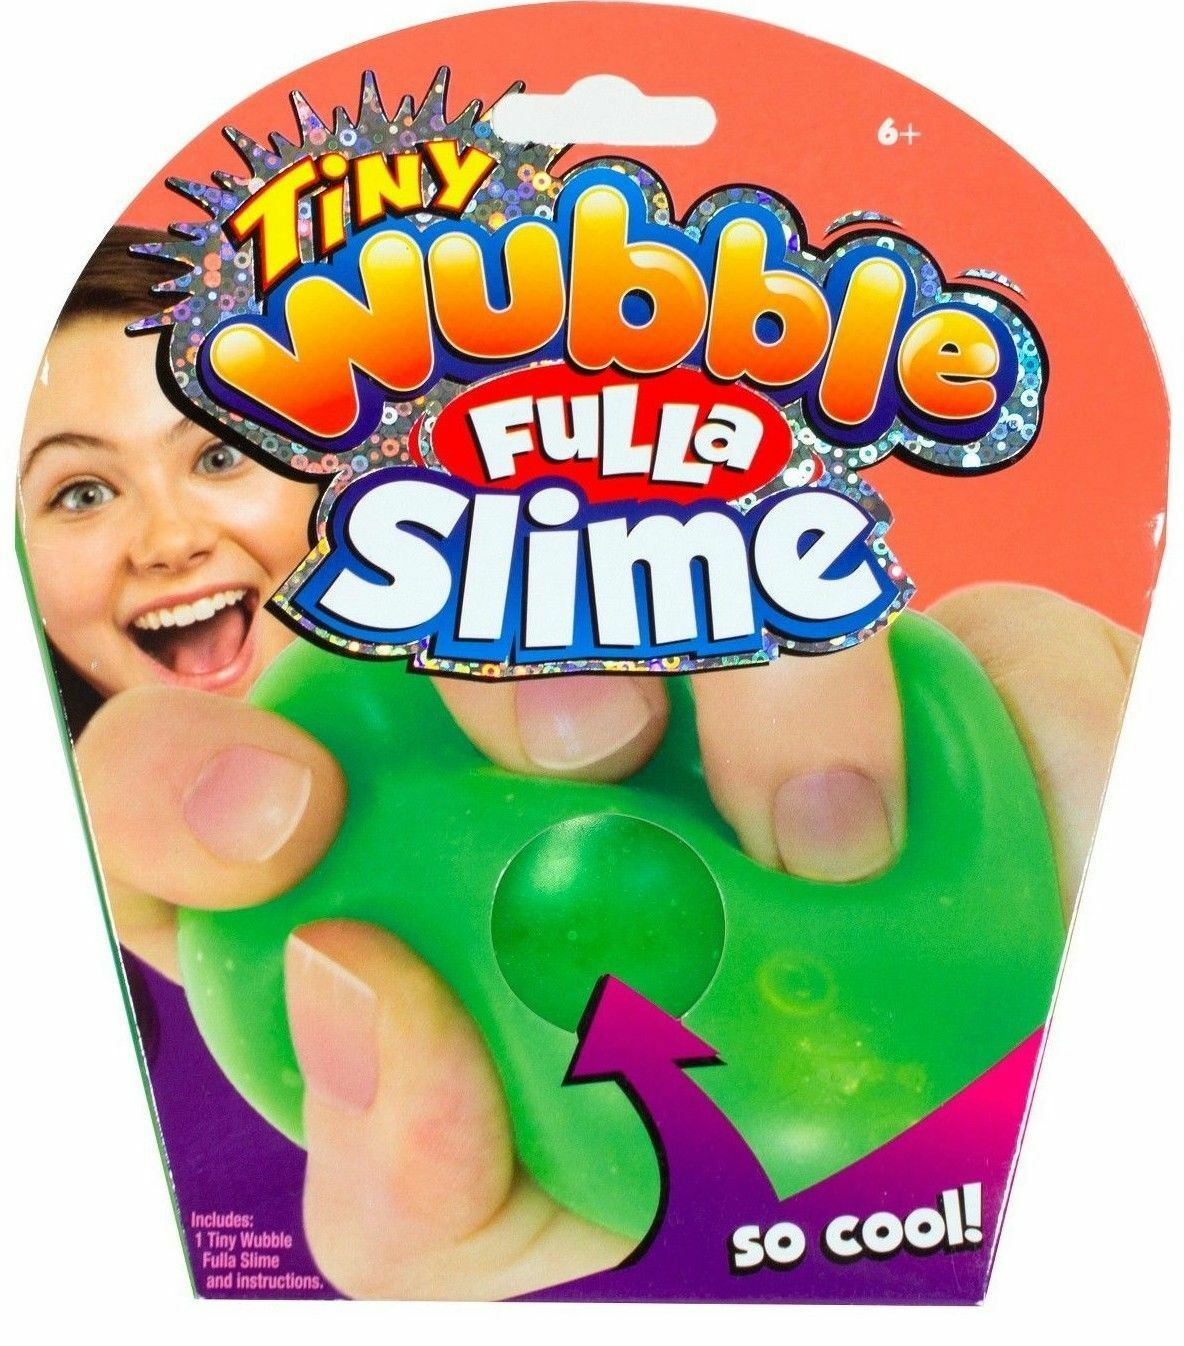 Tiny Wubble Fulla Sparkles-New Wubble Ball Filled With Shiny Colorful Sparkles